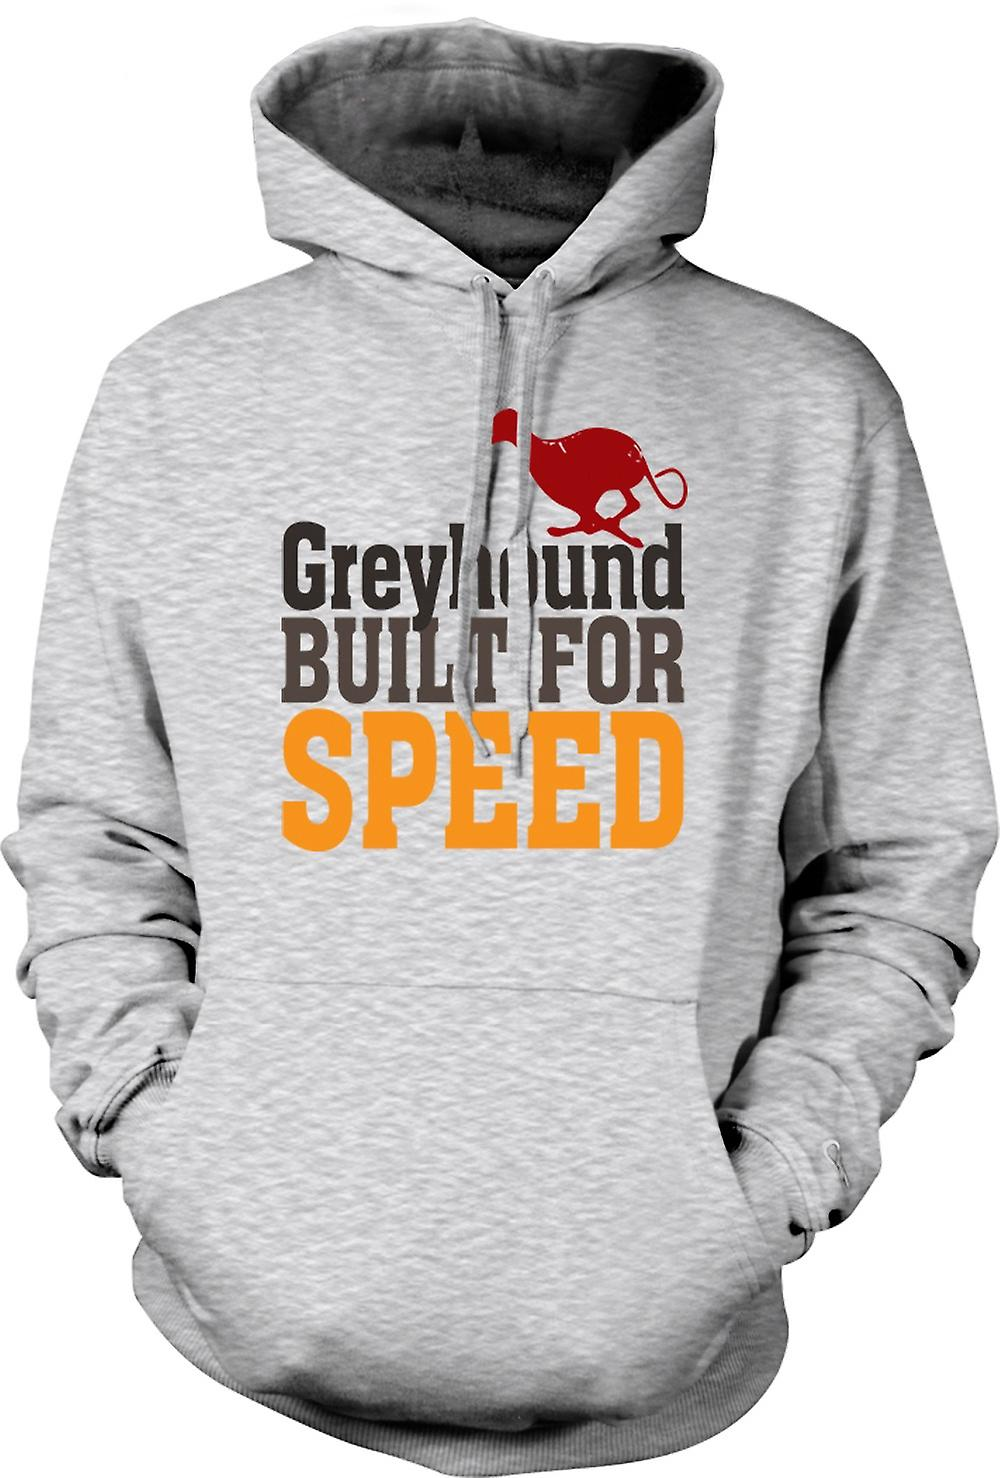 Mens Hoodie - Greyhound Built For Speed